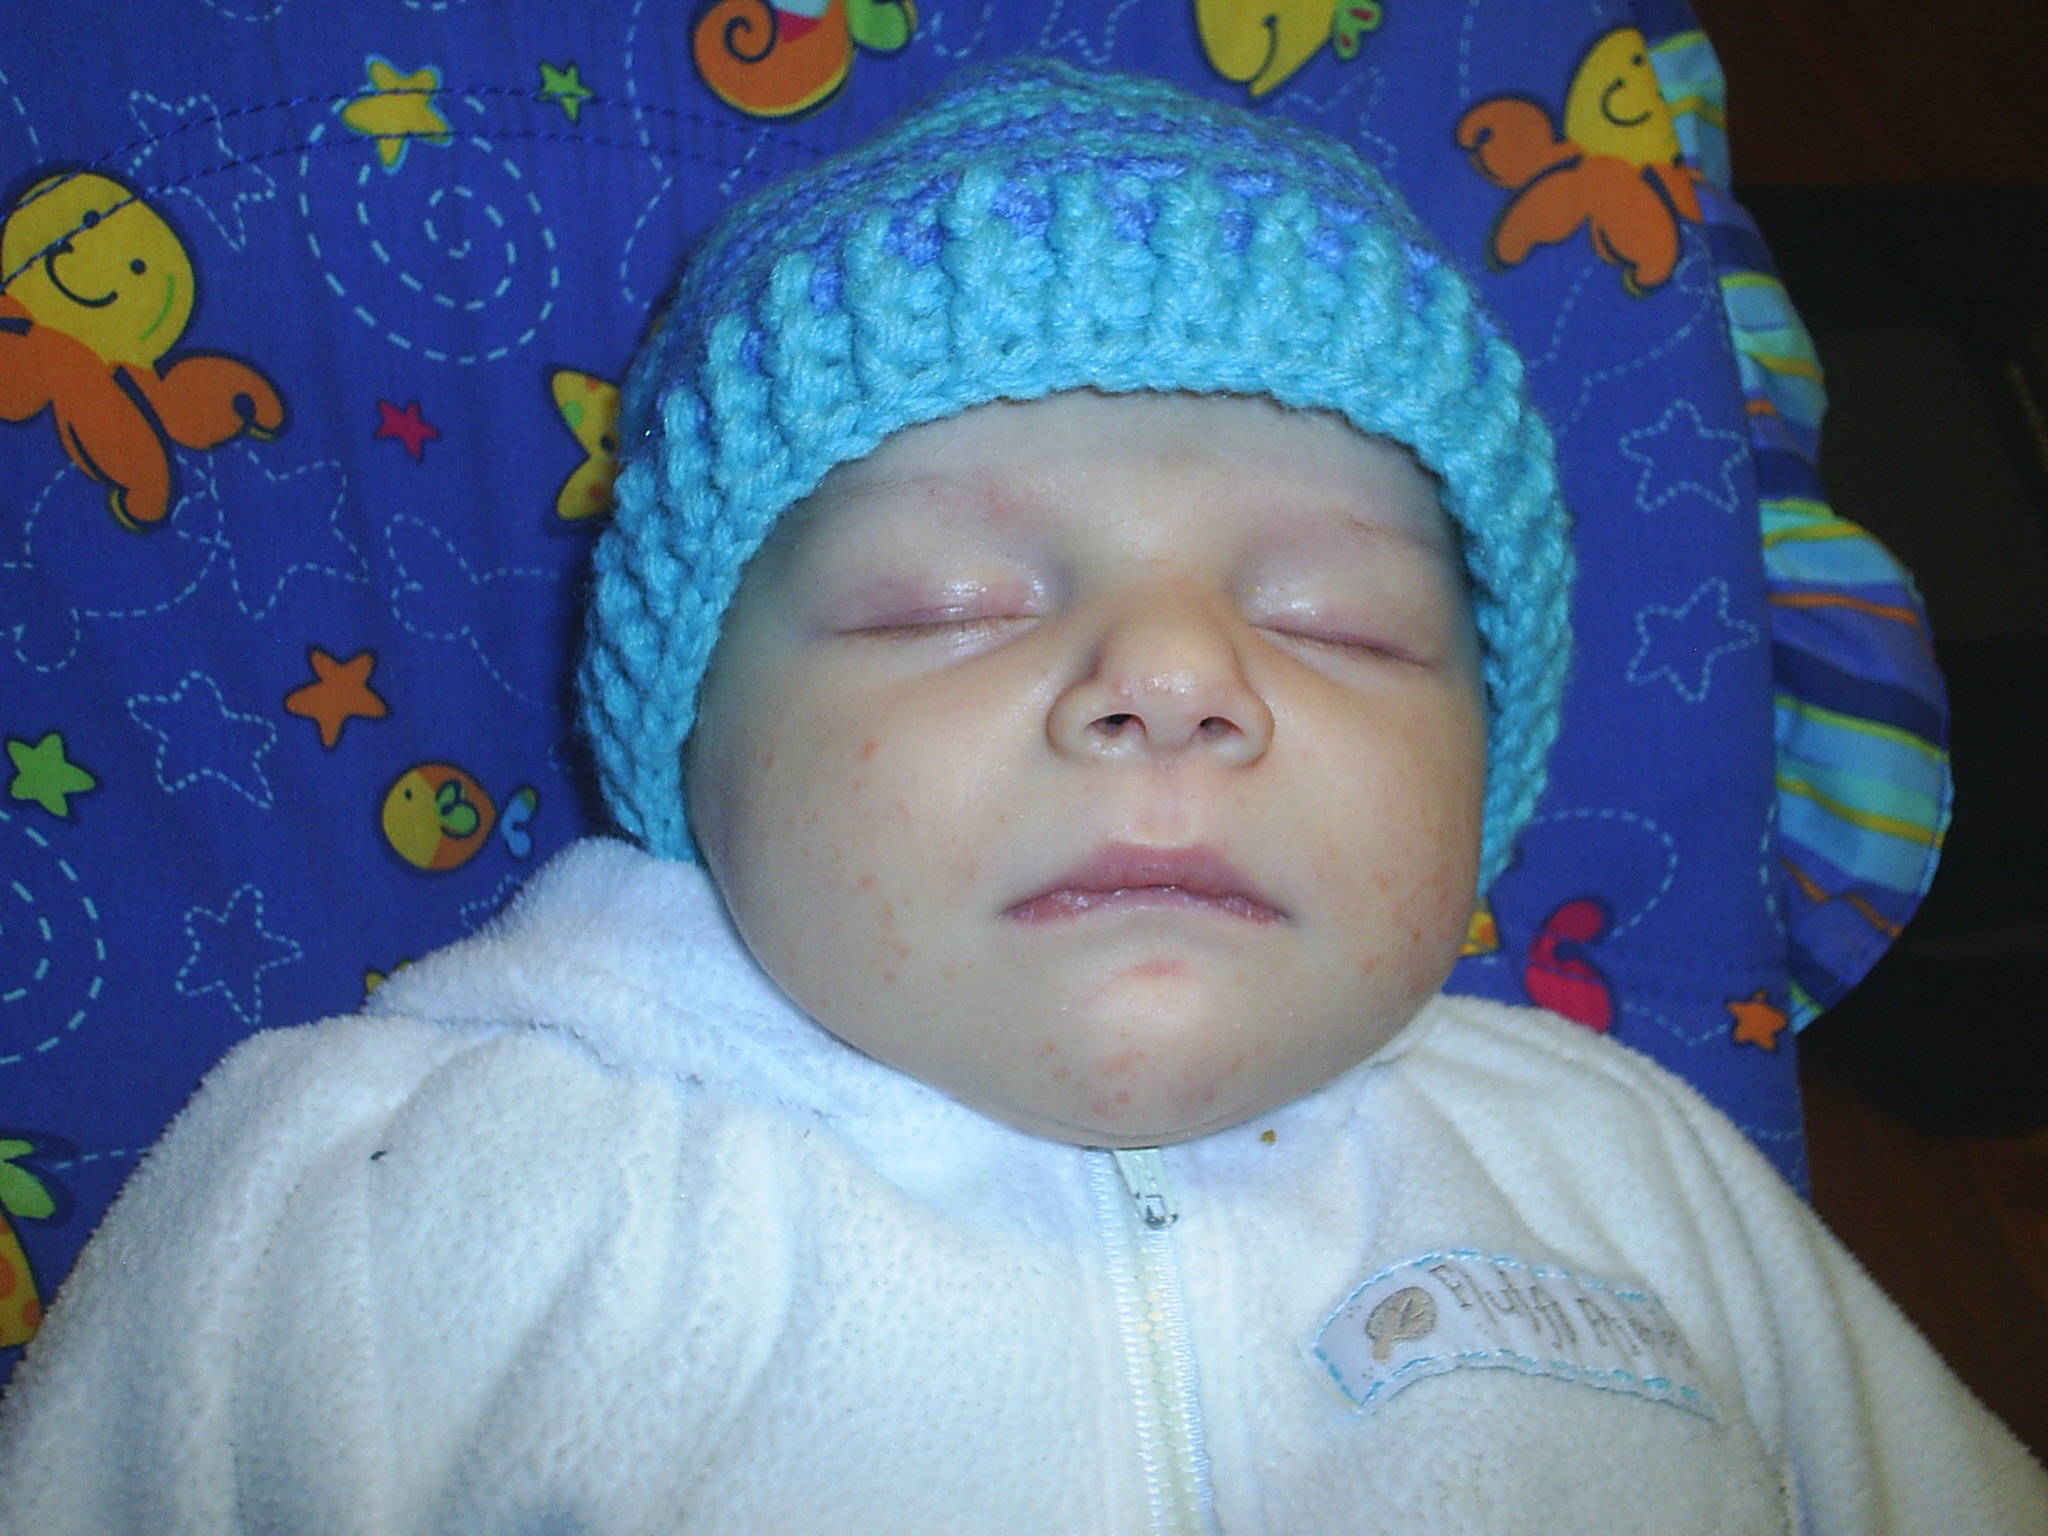 Free Crochet Patterns For Newborn Baby Hats : Baby Hat Crochet Pattern - Modern Homemakers